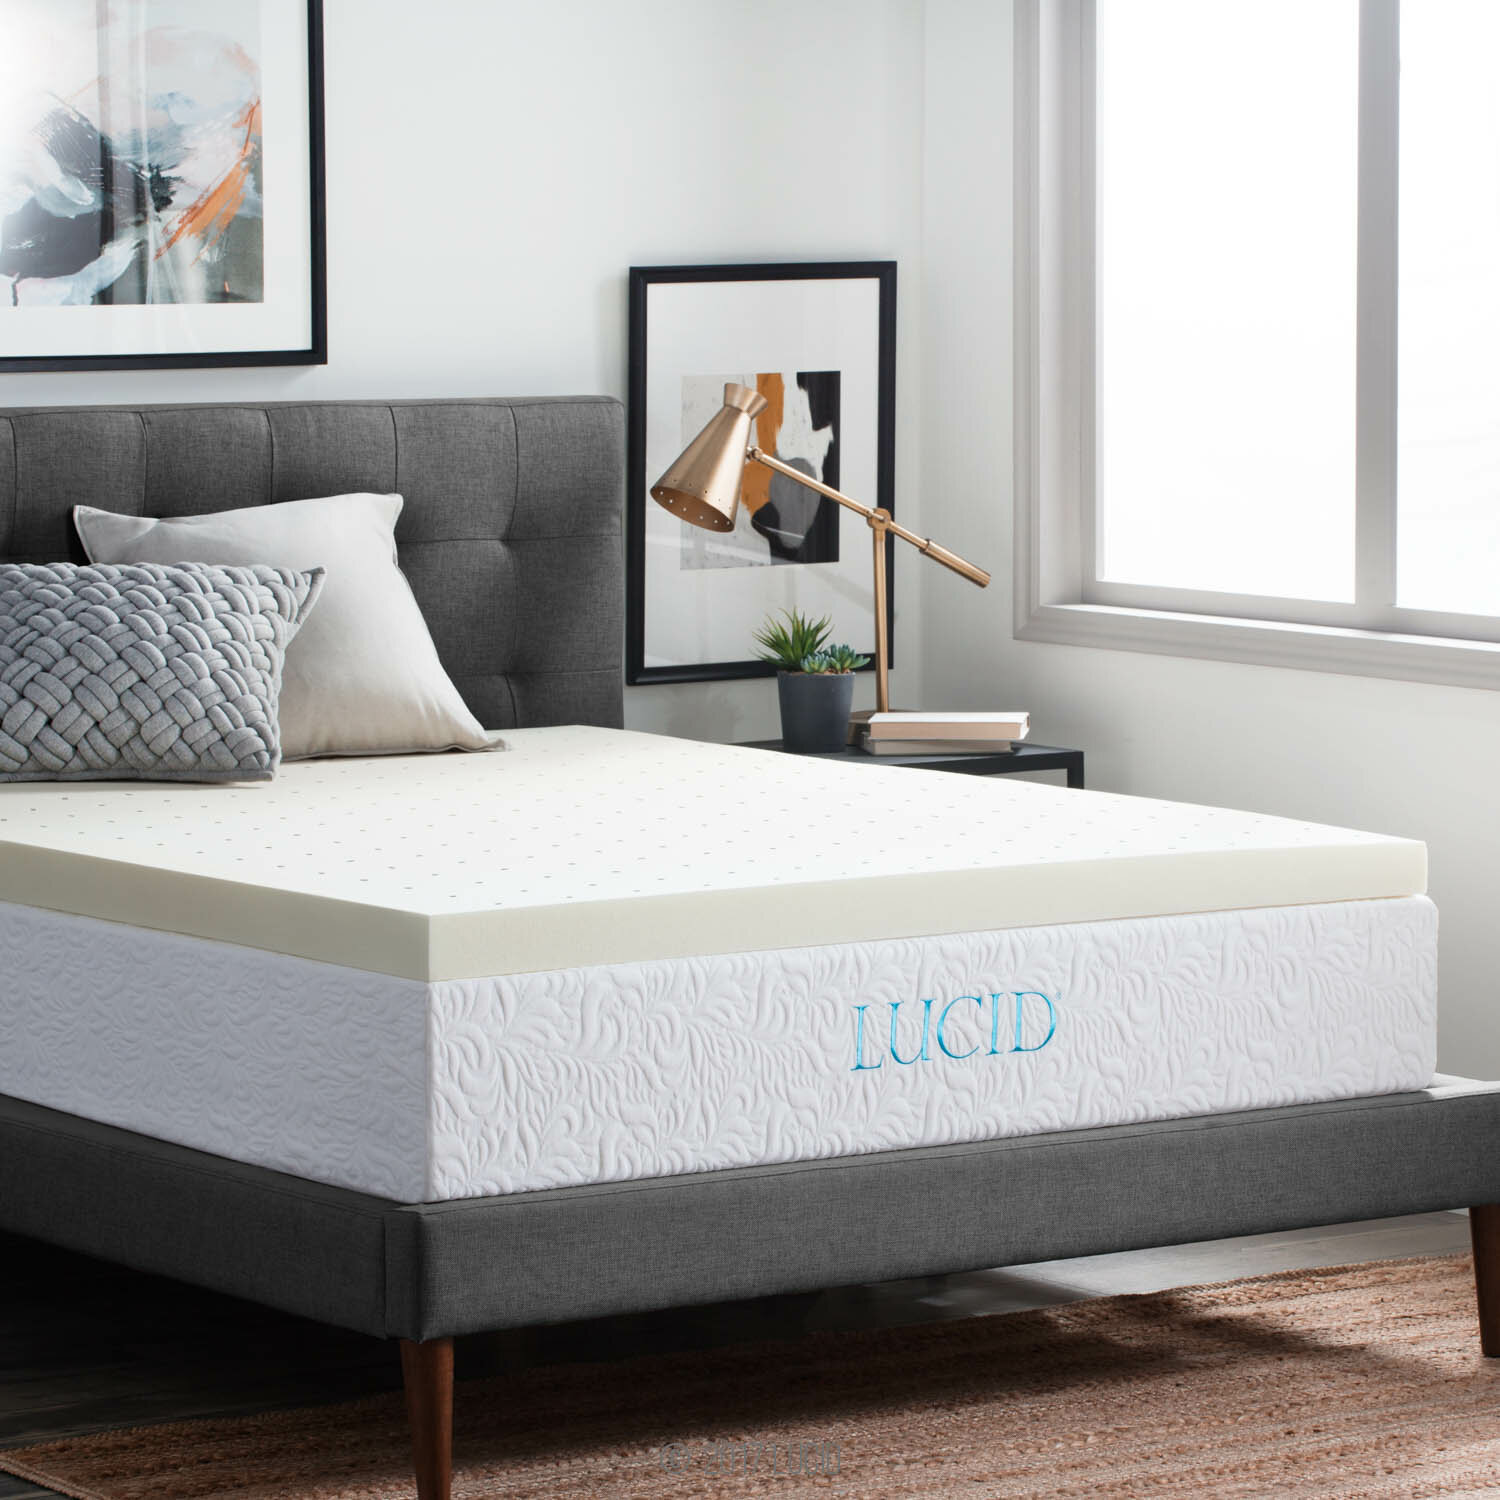 mattress cover product skirted pad snuggle bjs imageid wholesale foam recipeid home memory zone with club size king gel topper profileid imageservice